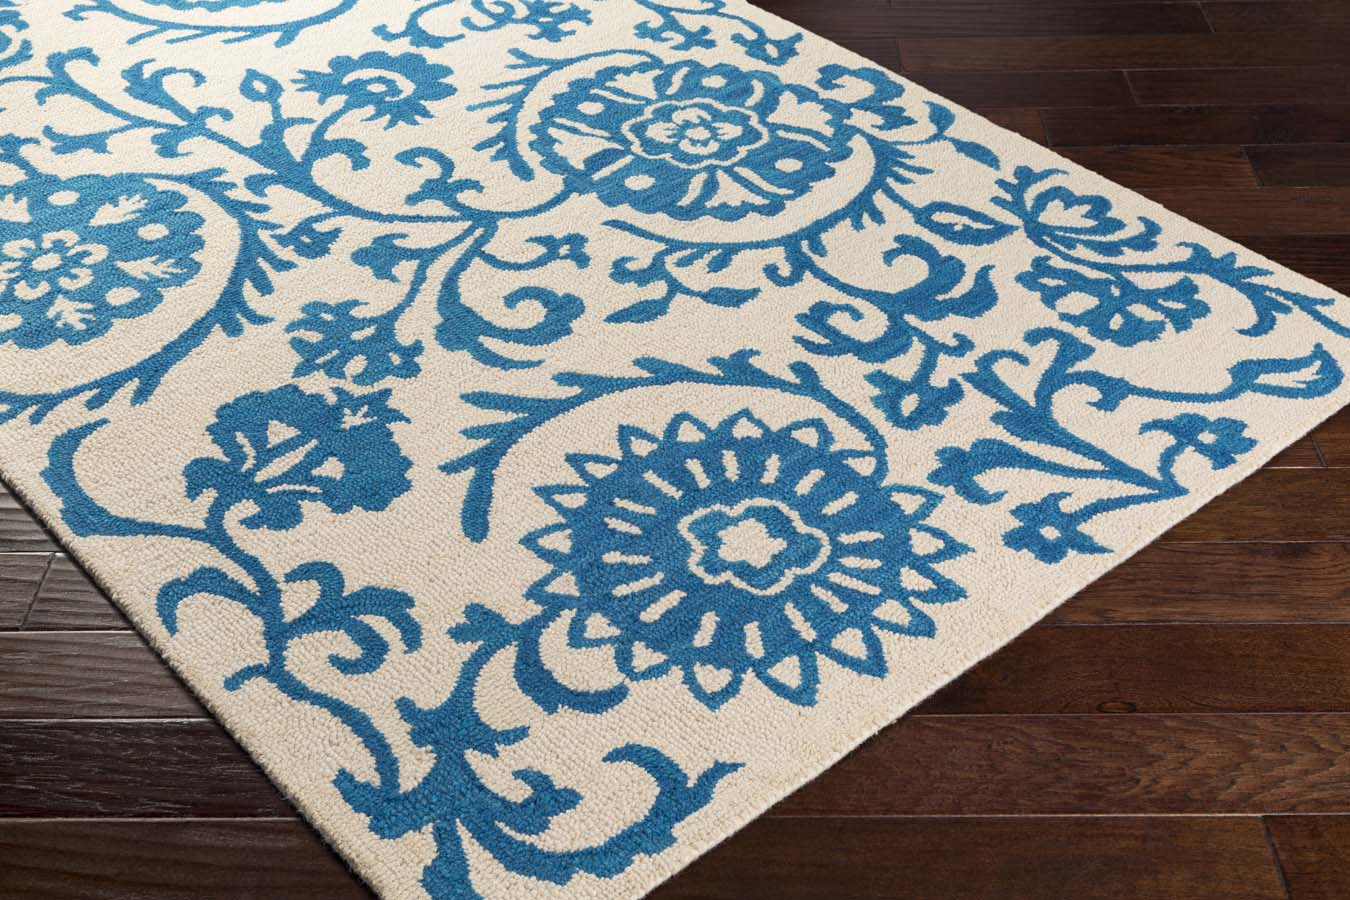 Artistic Weavers RHODES RDS-2314 Maggie Royal Blue/Off-White Rug